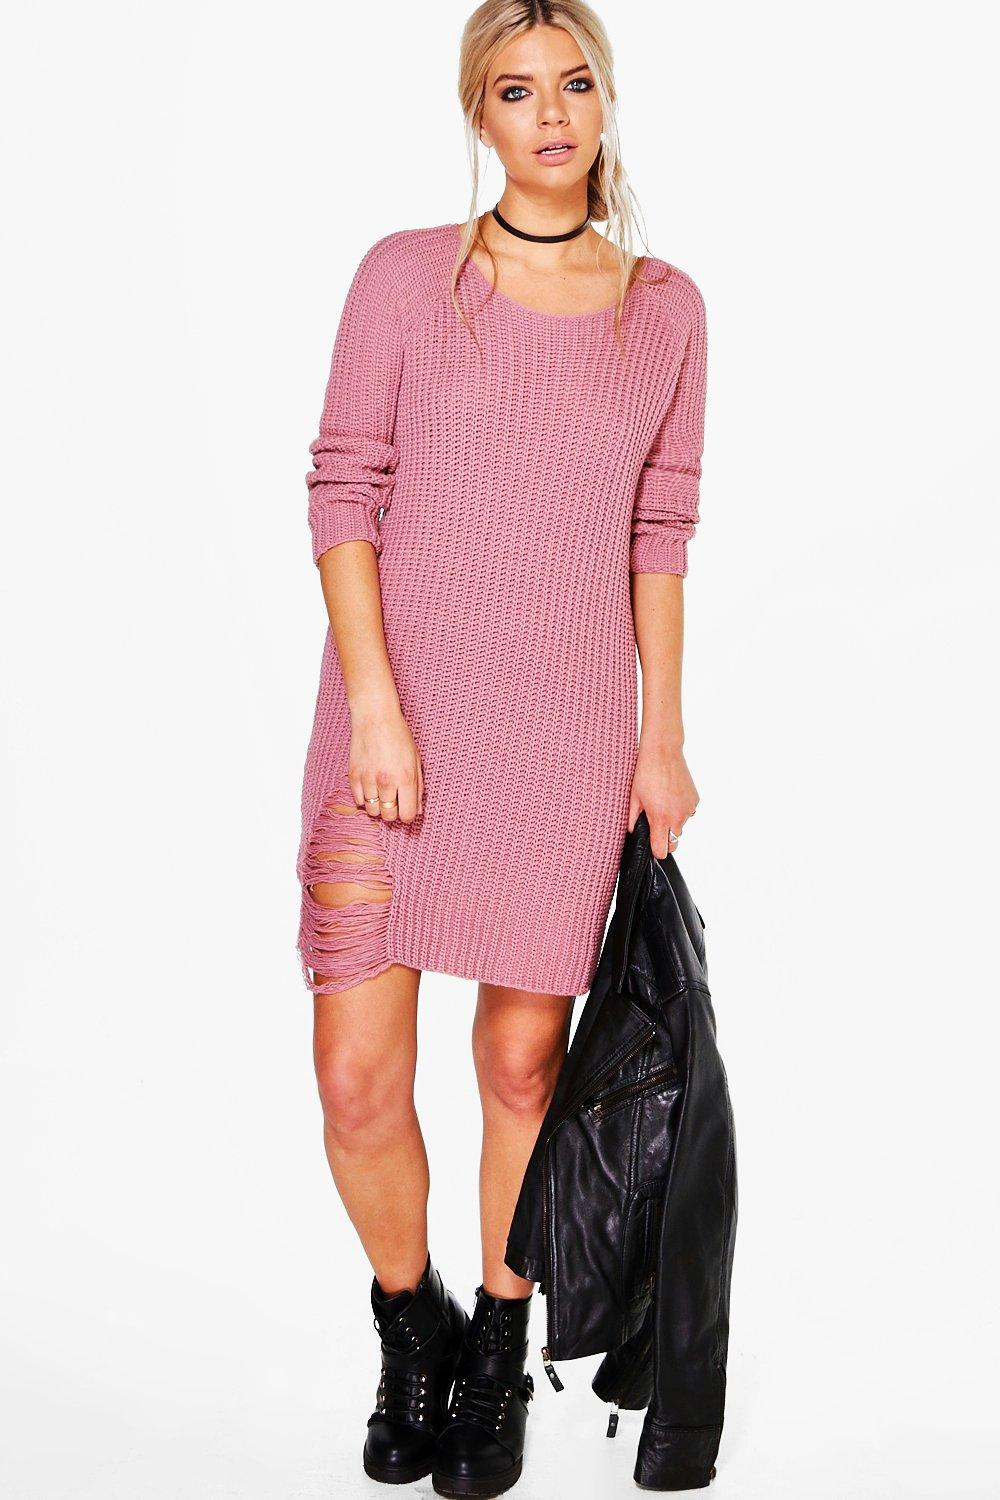 Sexy Dresses for Women. Shop new dress styles for Browse hundreds of the latest styles of cheap party dresses, cute cocktail dresses, and club dresses all at low prices.